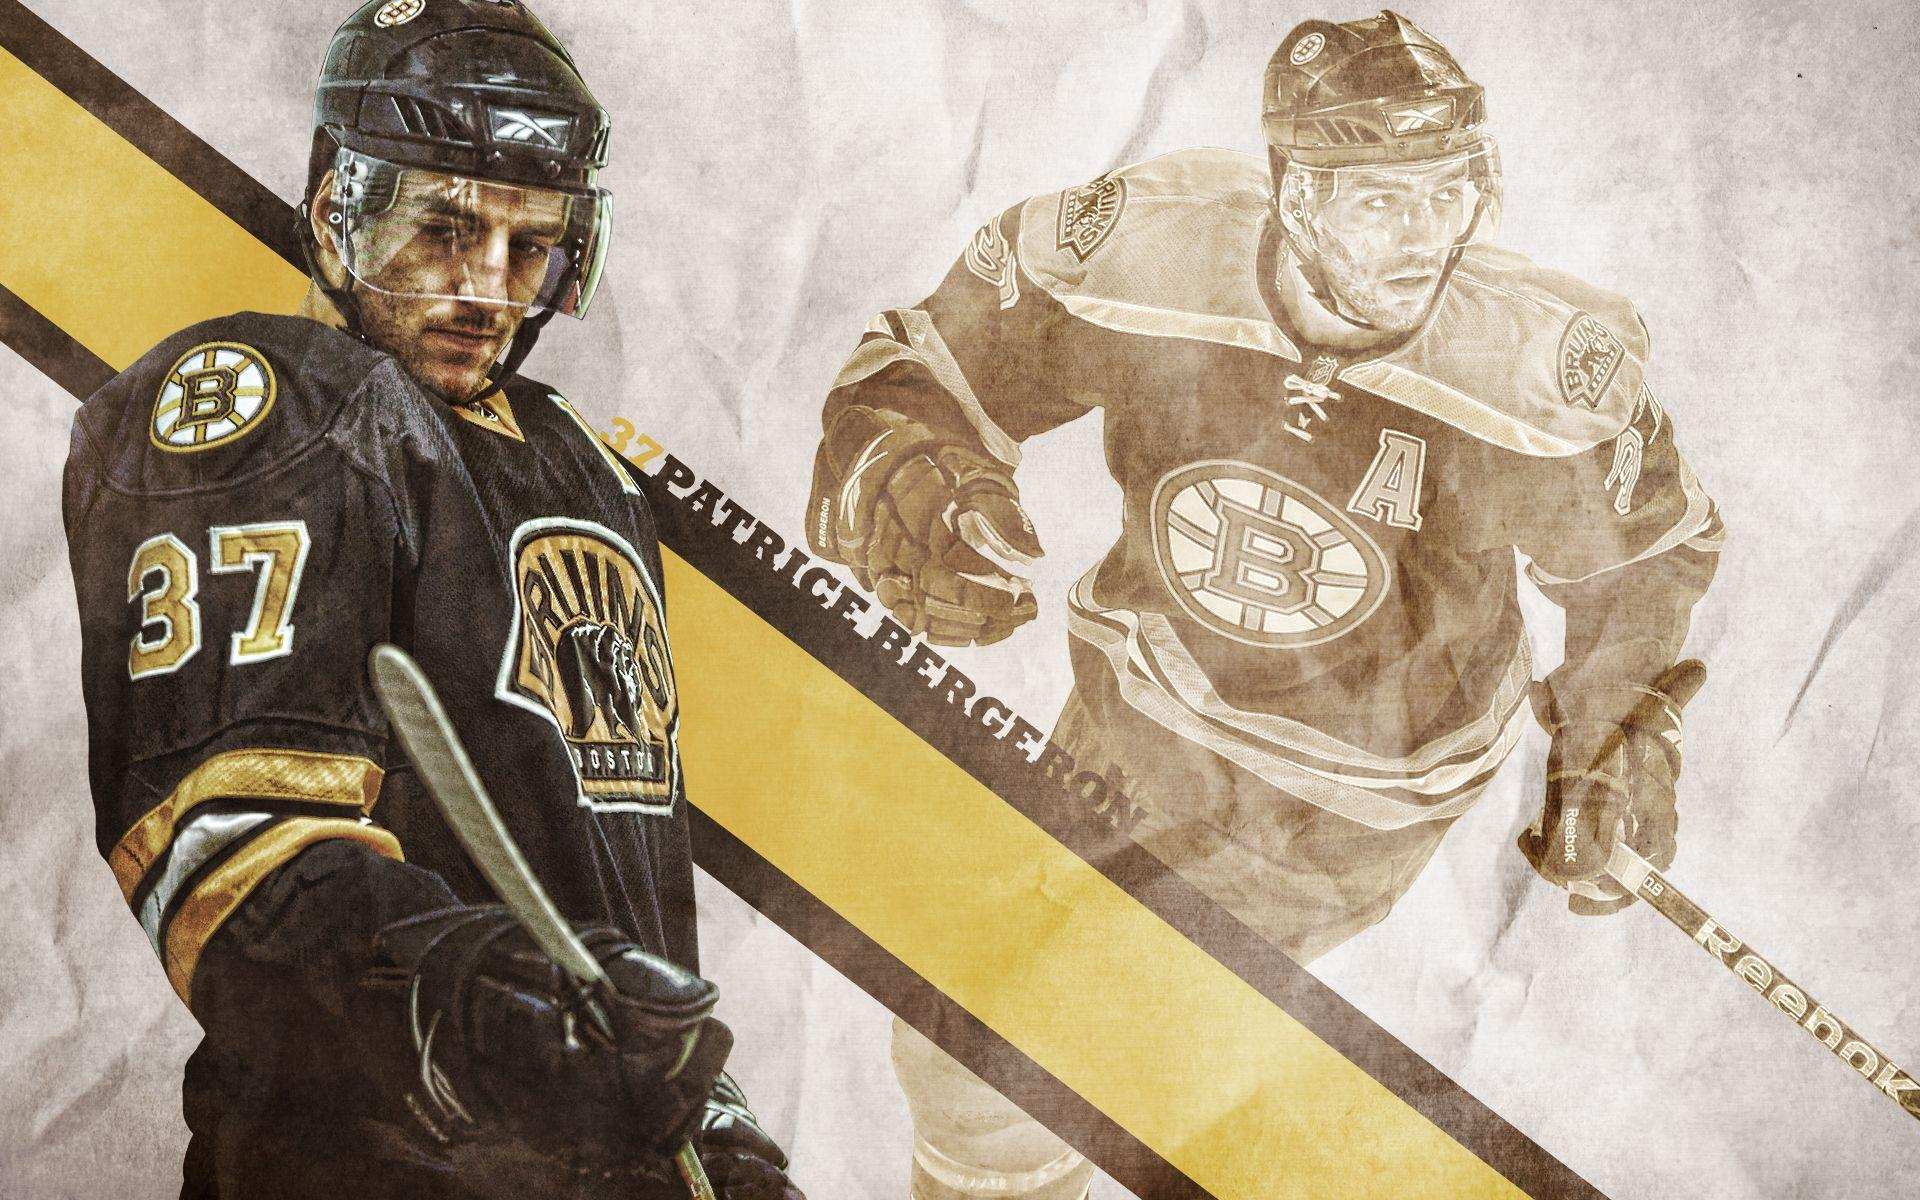 Boston Bruins image Patrice Bergeron HD wallpapers and backgrounds